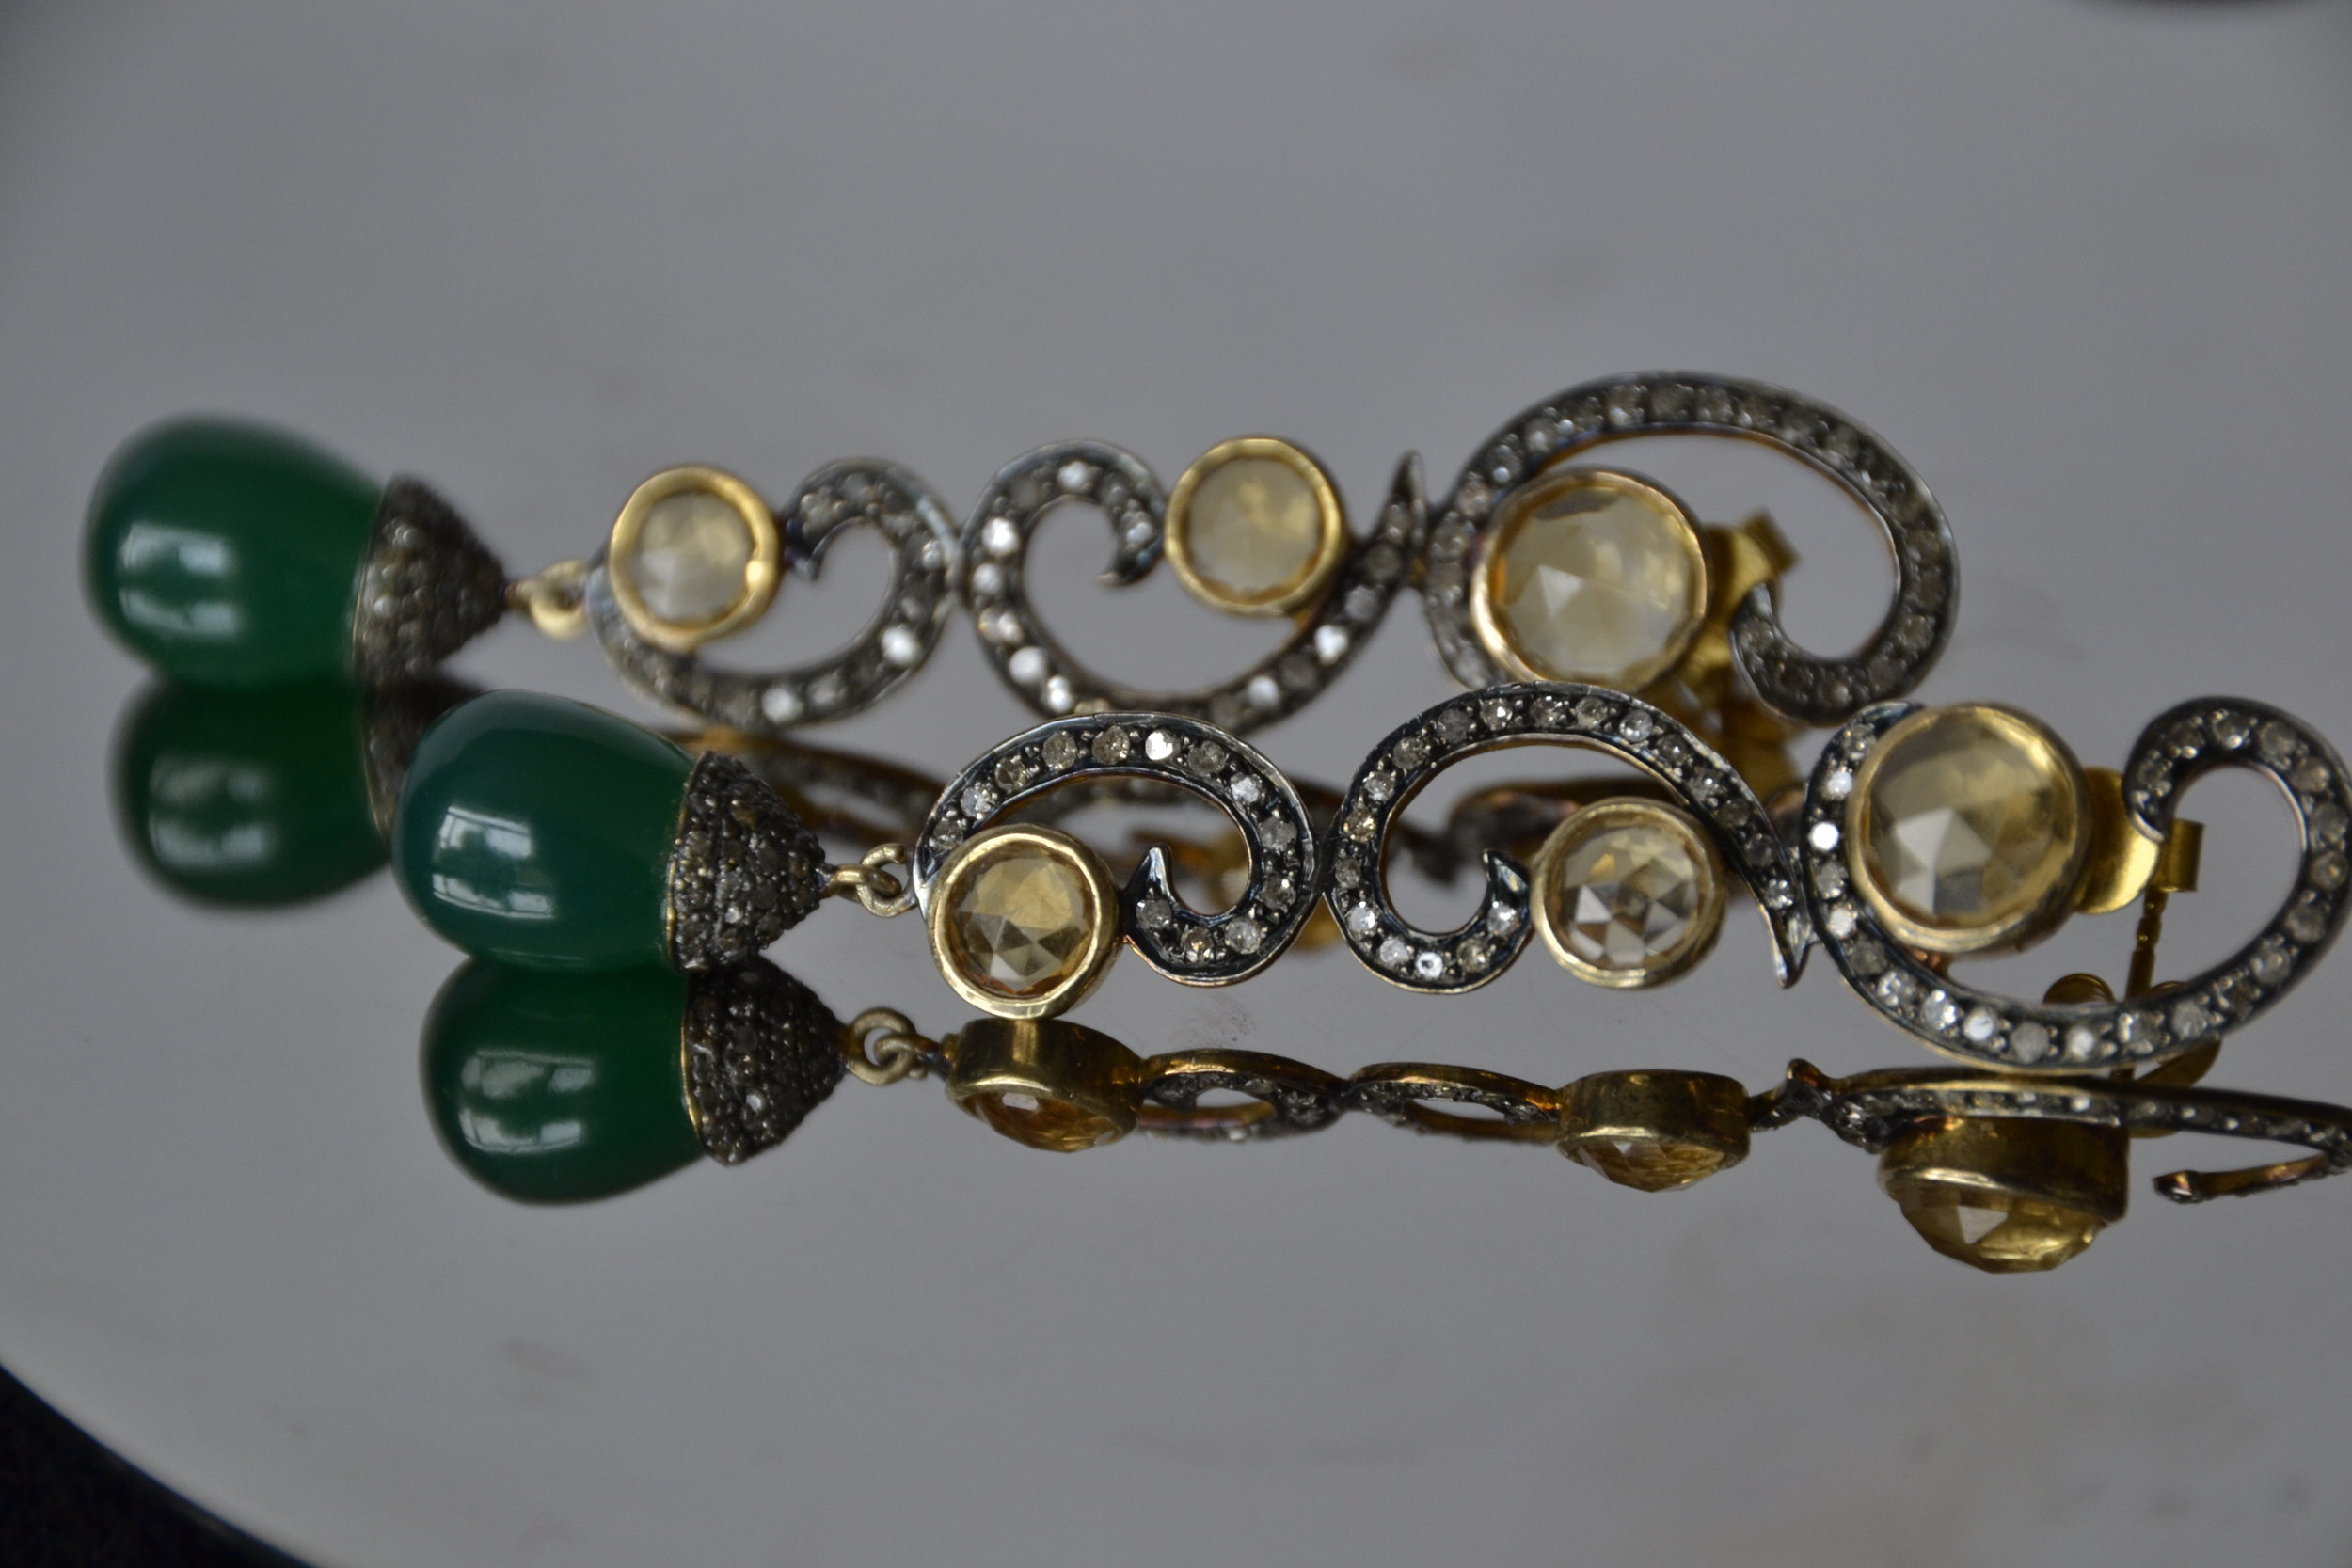 Antique earrings with citrine, green tourmaline and diamonds